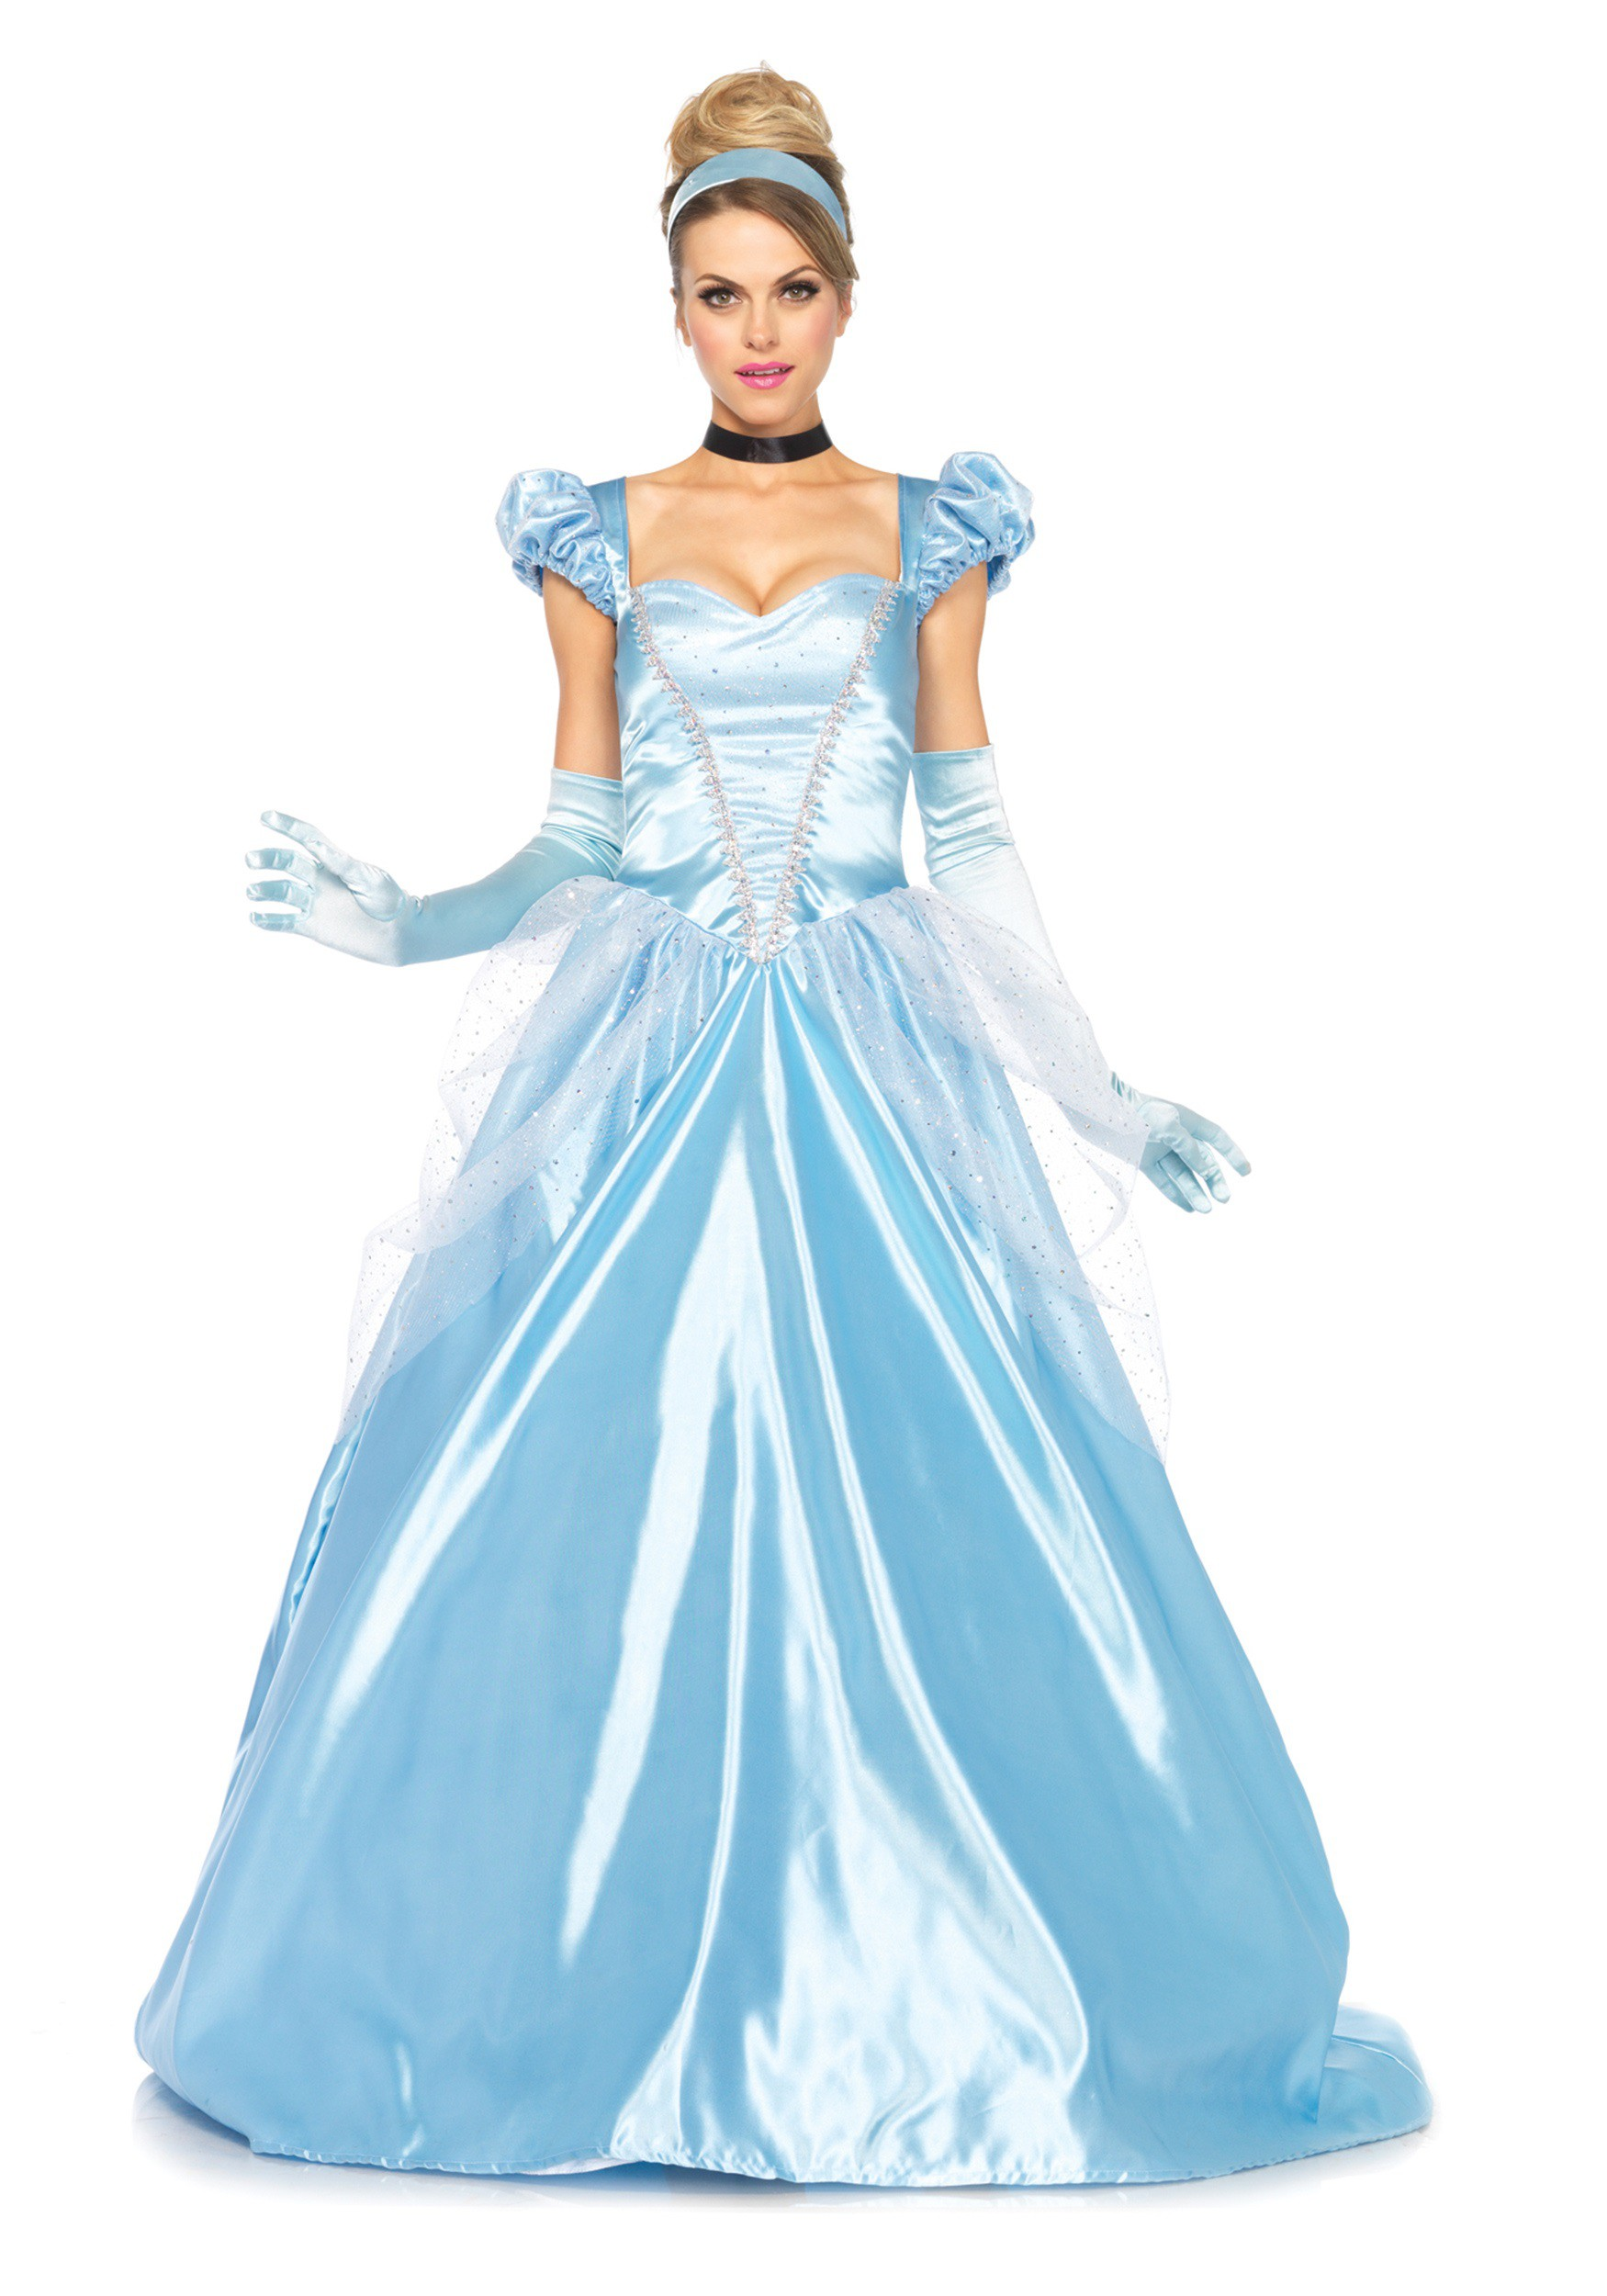 Classic Cinderella Full Length Gown